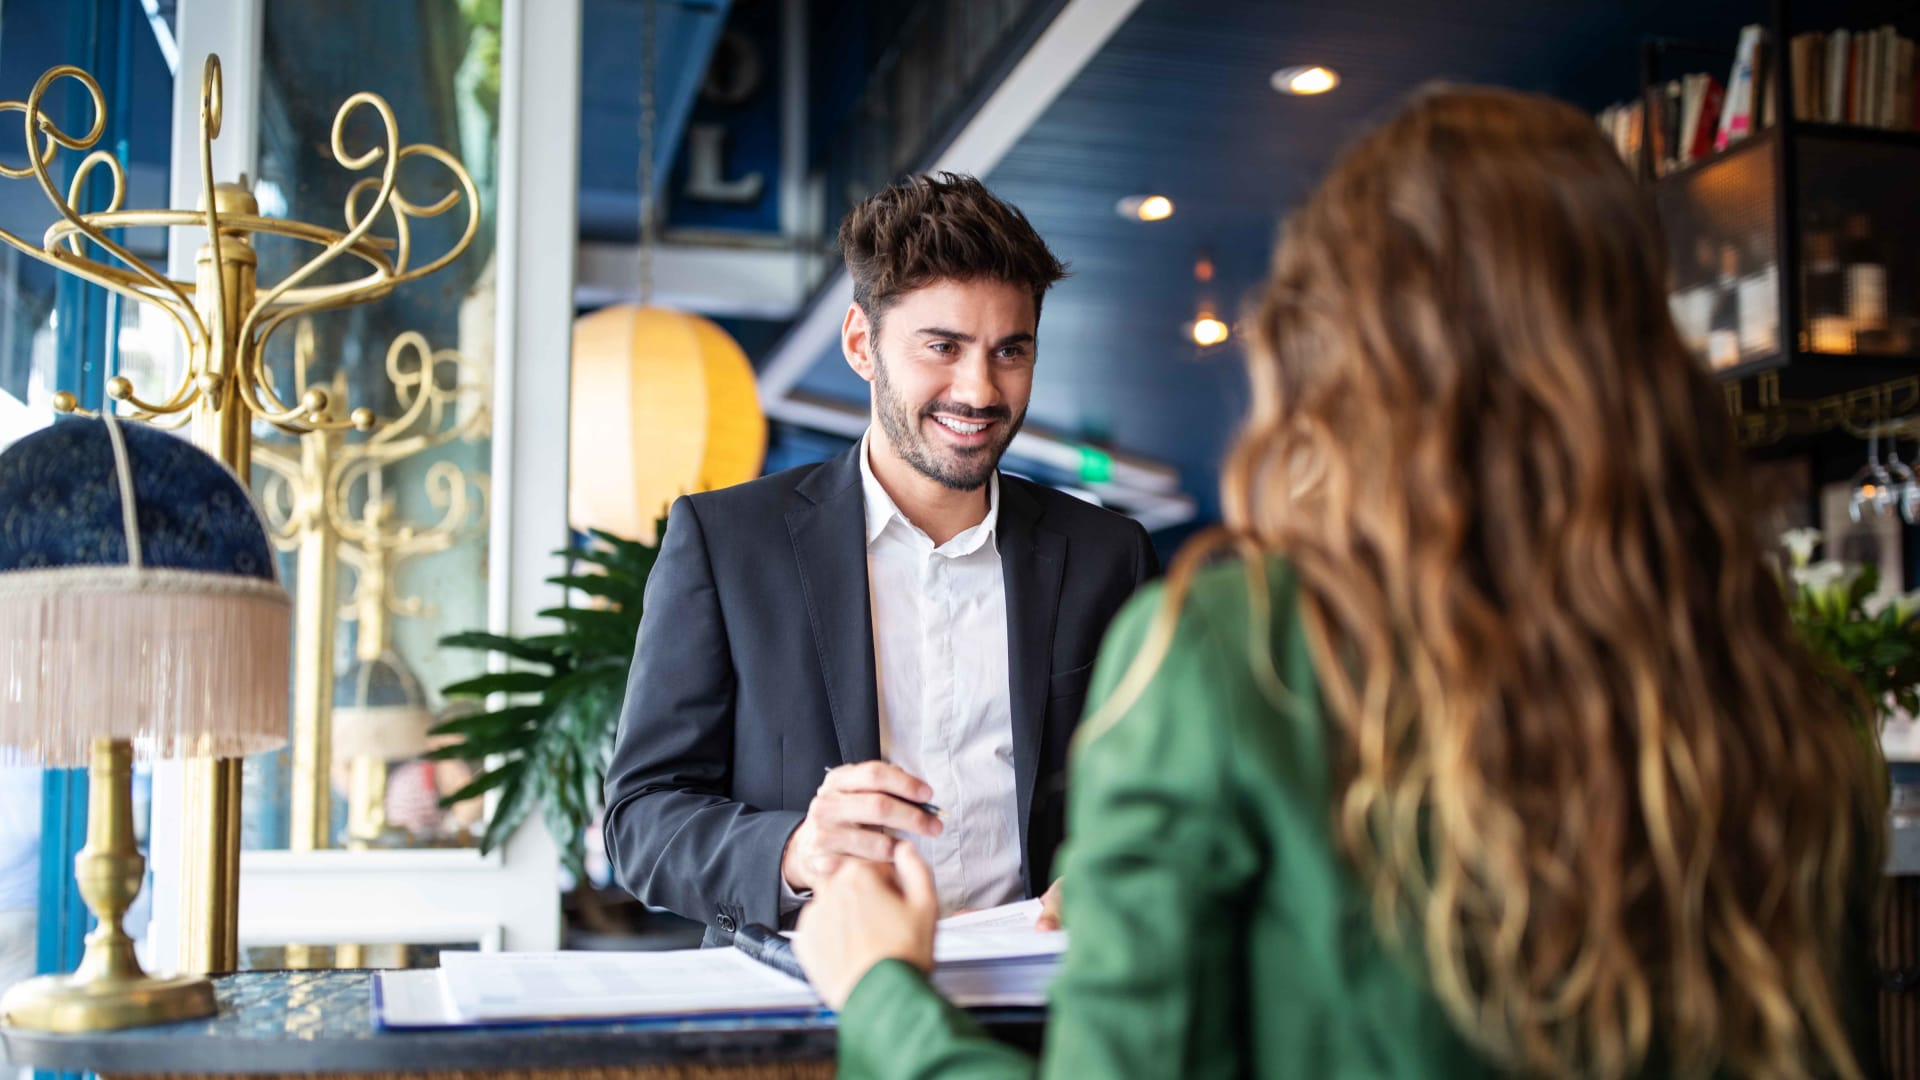 8 Steps to Delivering a Consistently Memorable Customer Experience